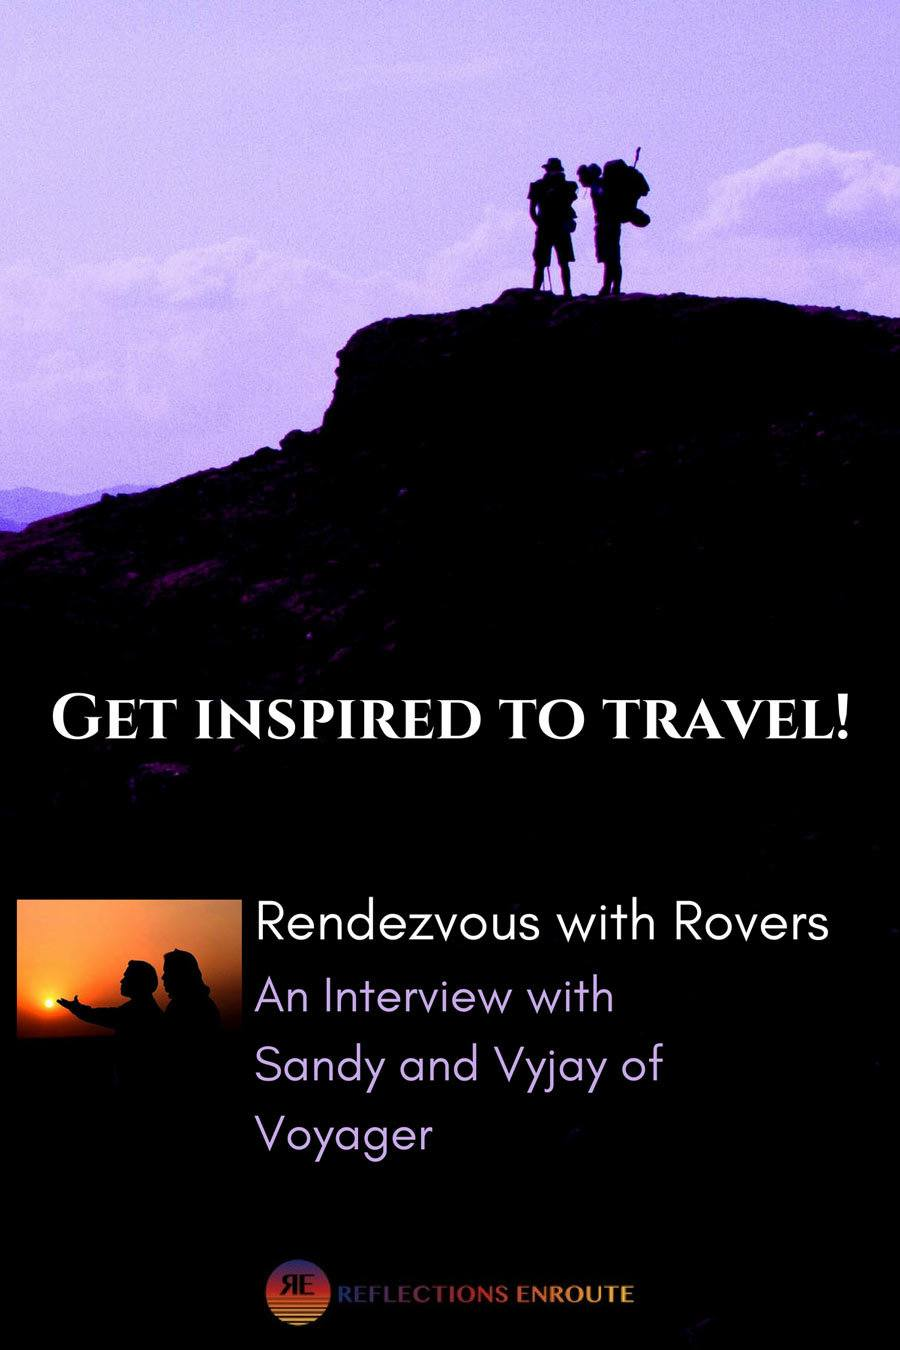 Rendezvous with Vyjay and Sandy.